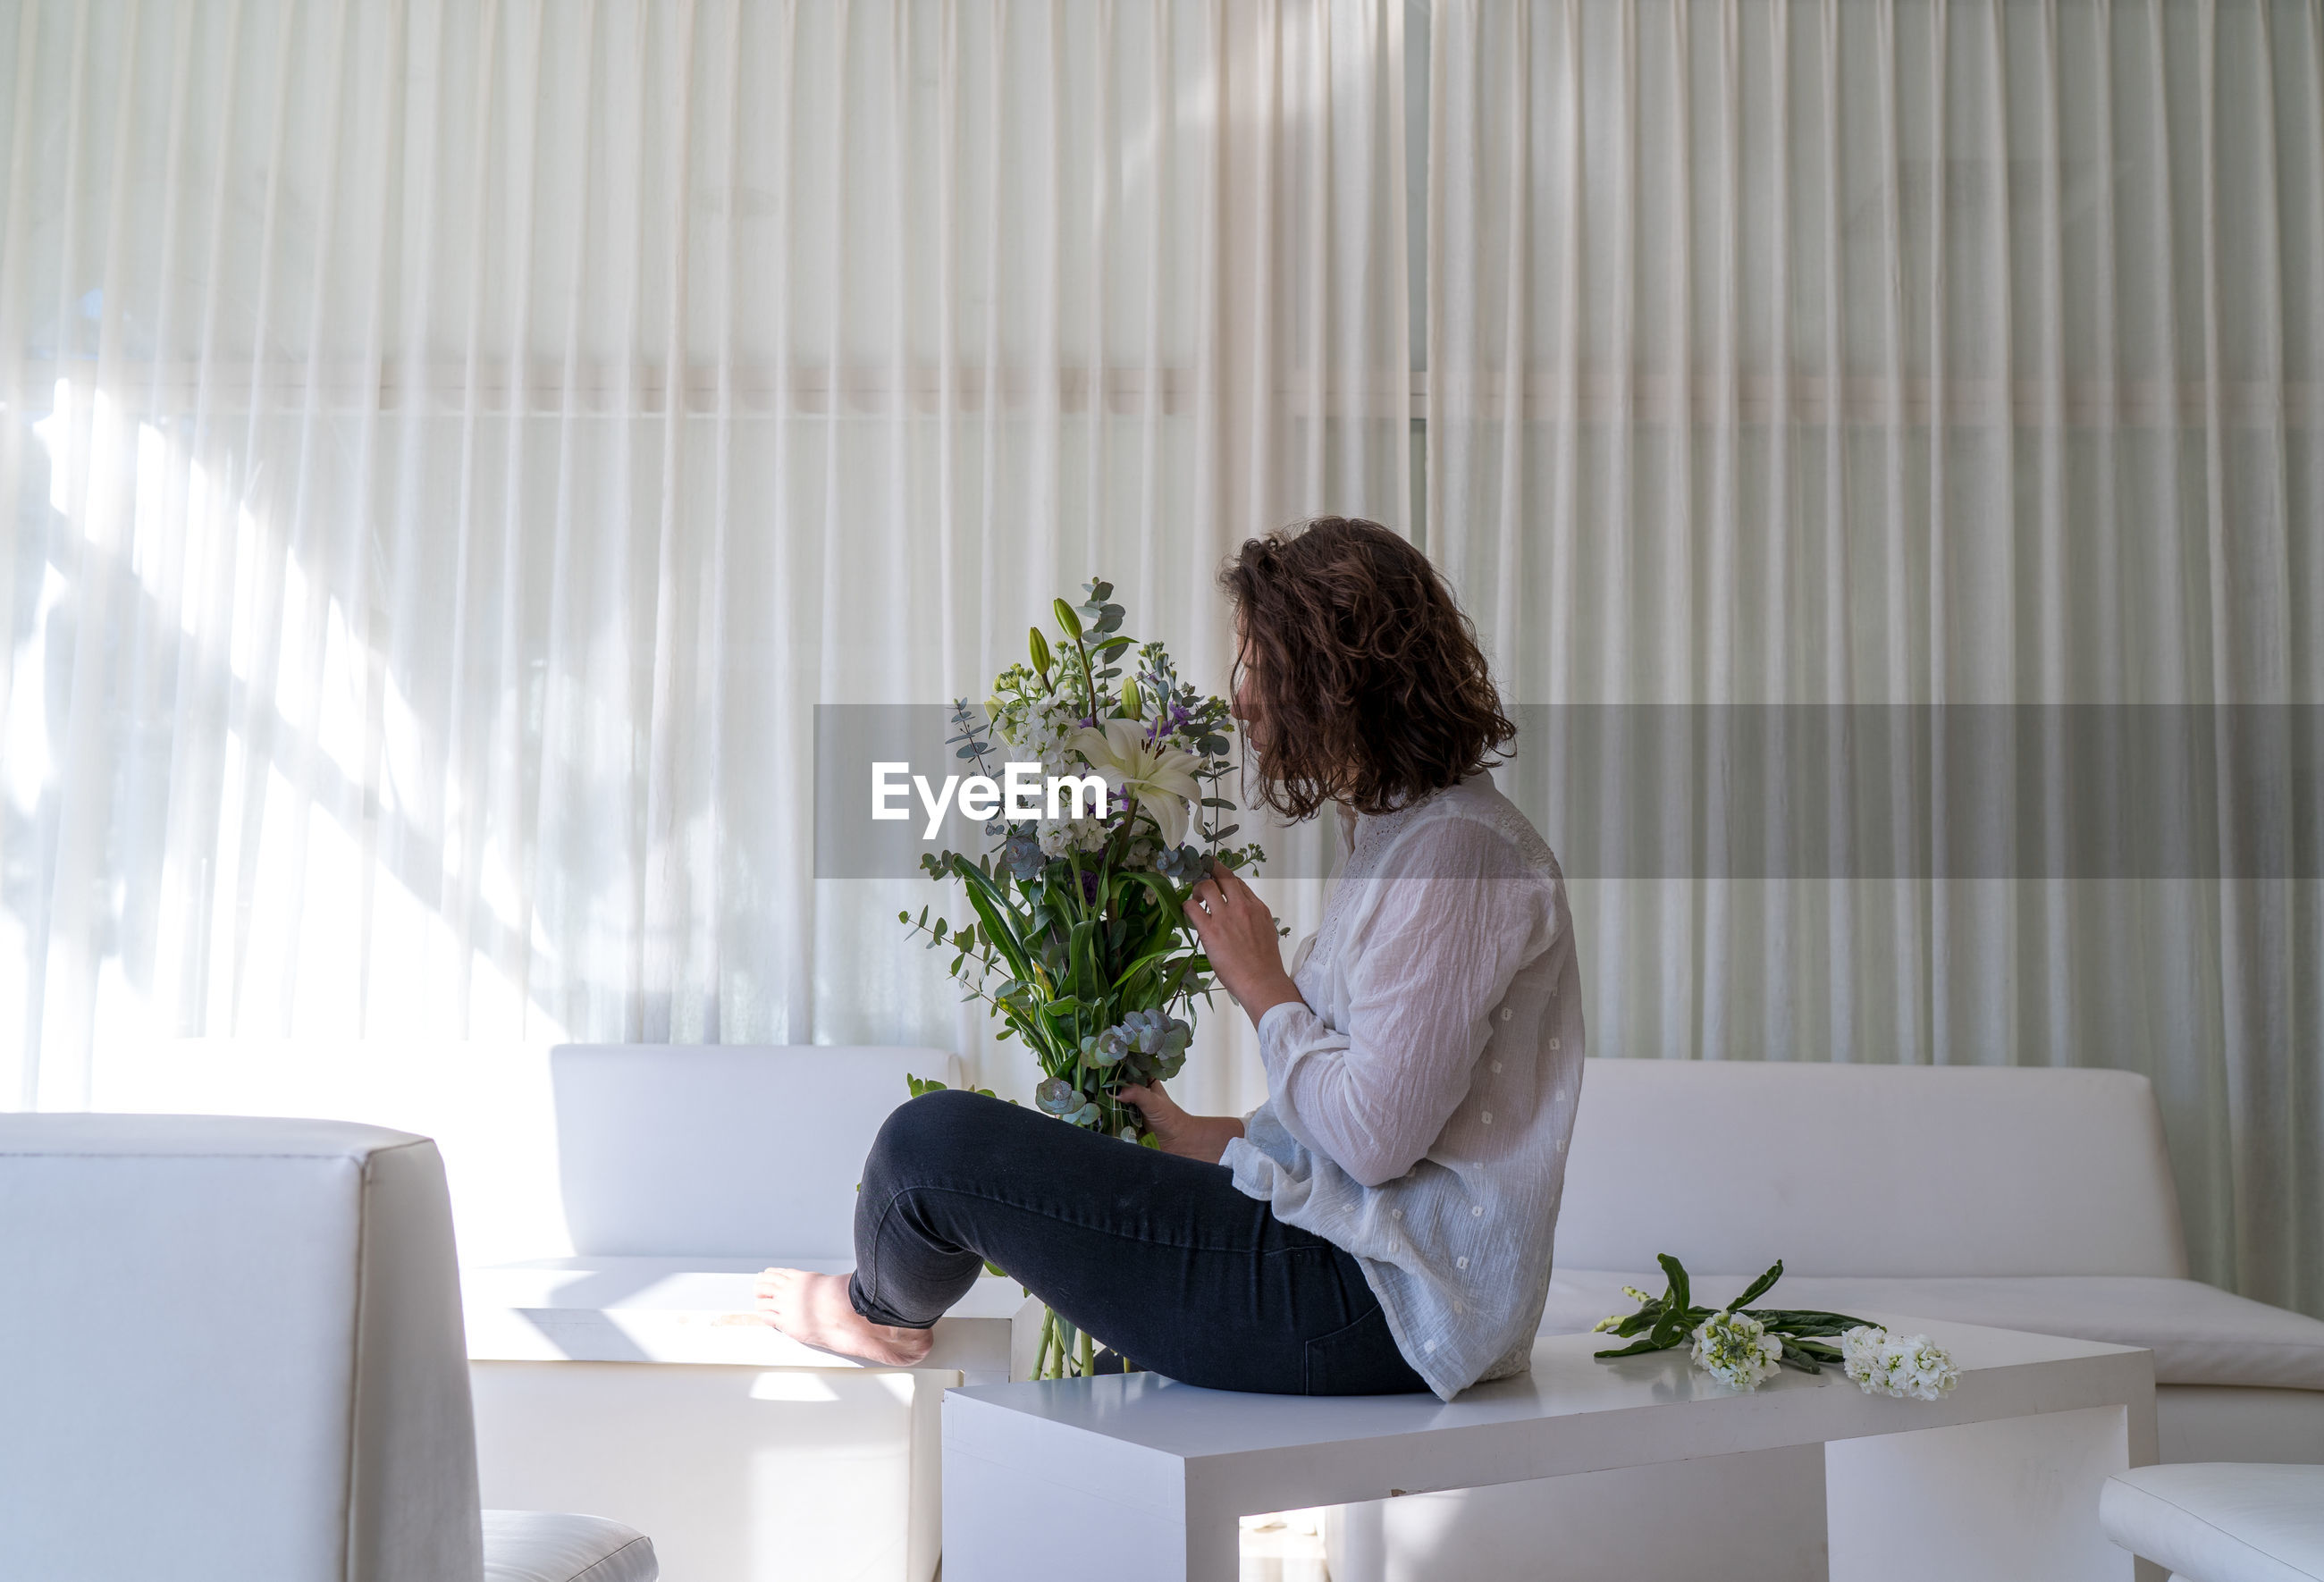 Woman sitting on table by potted plant